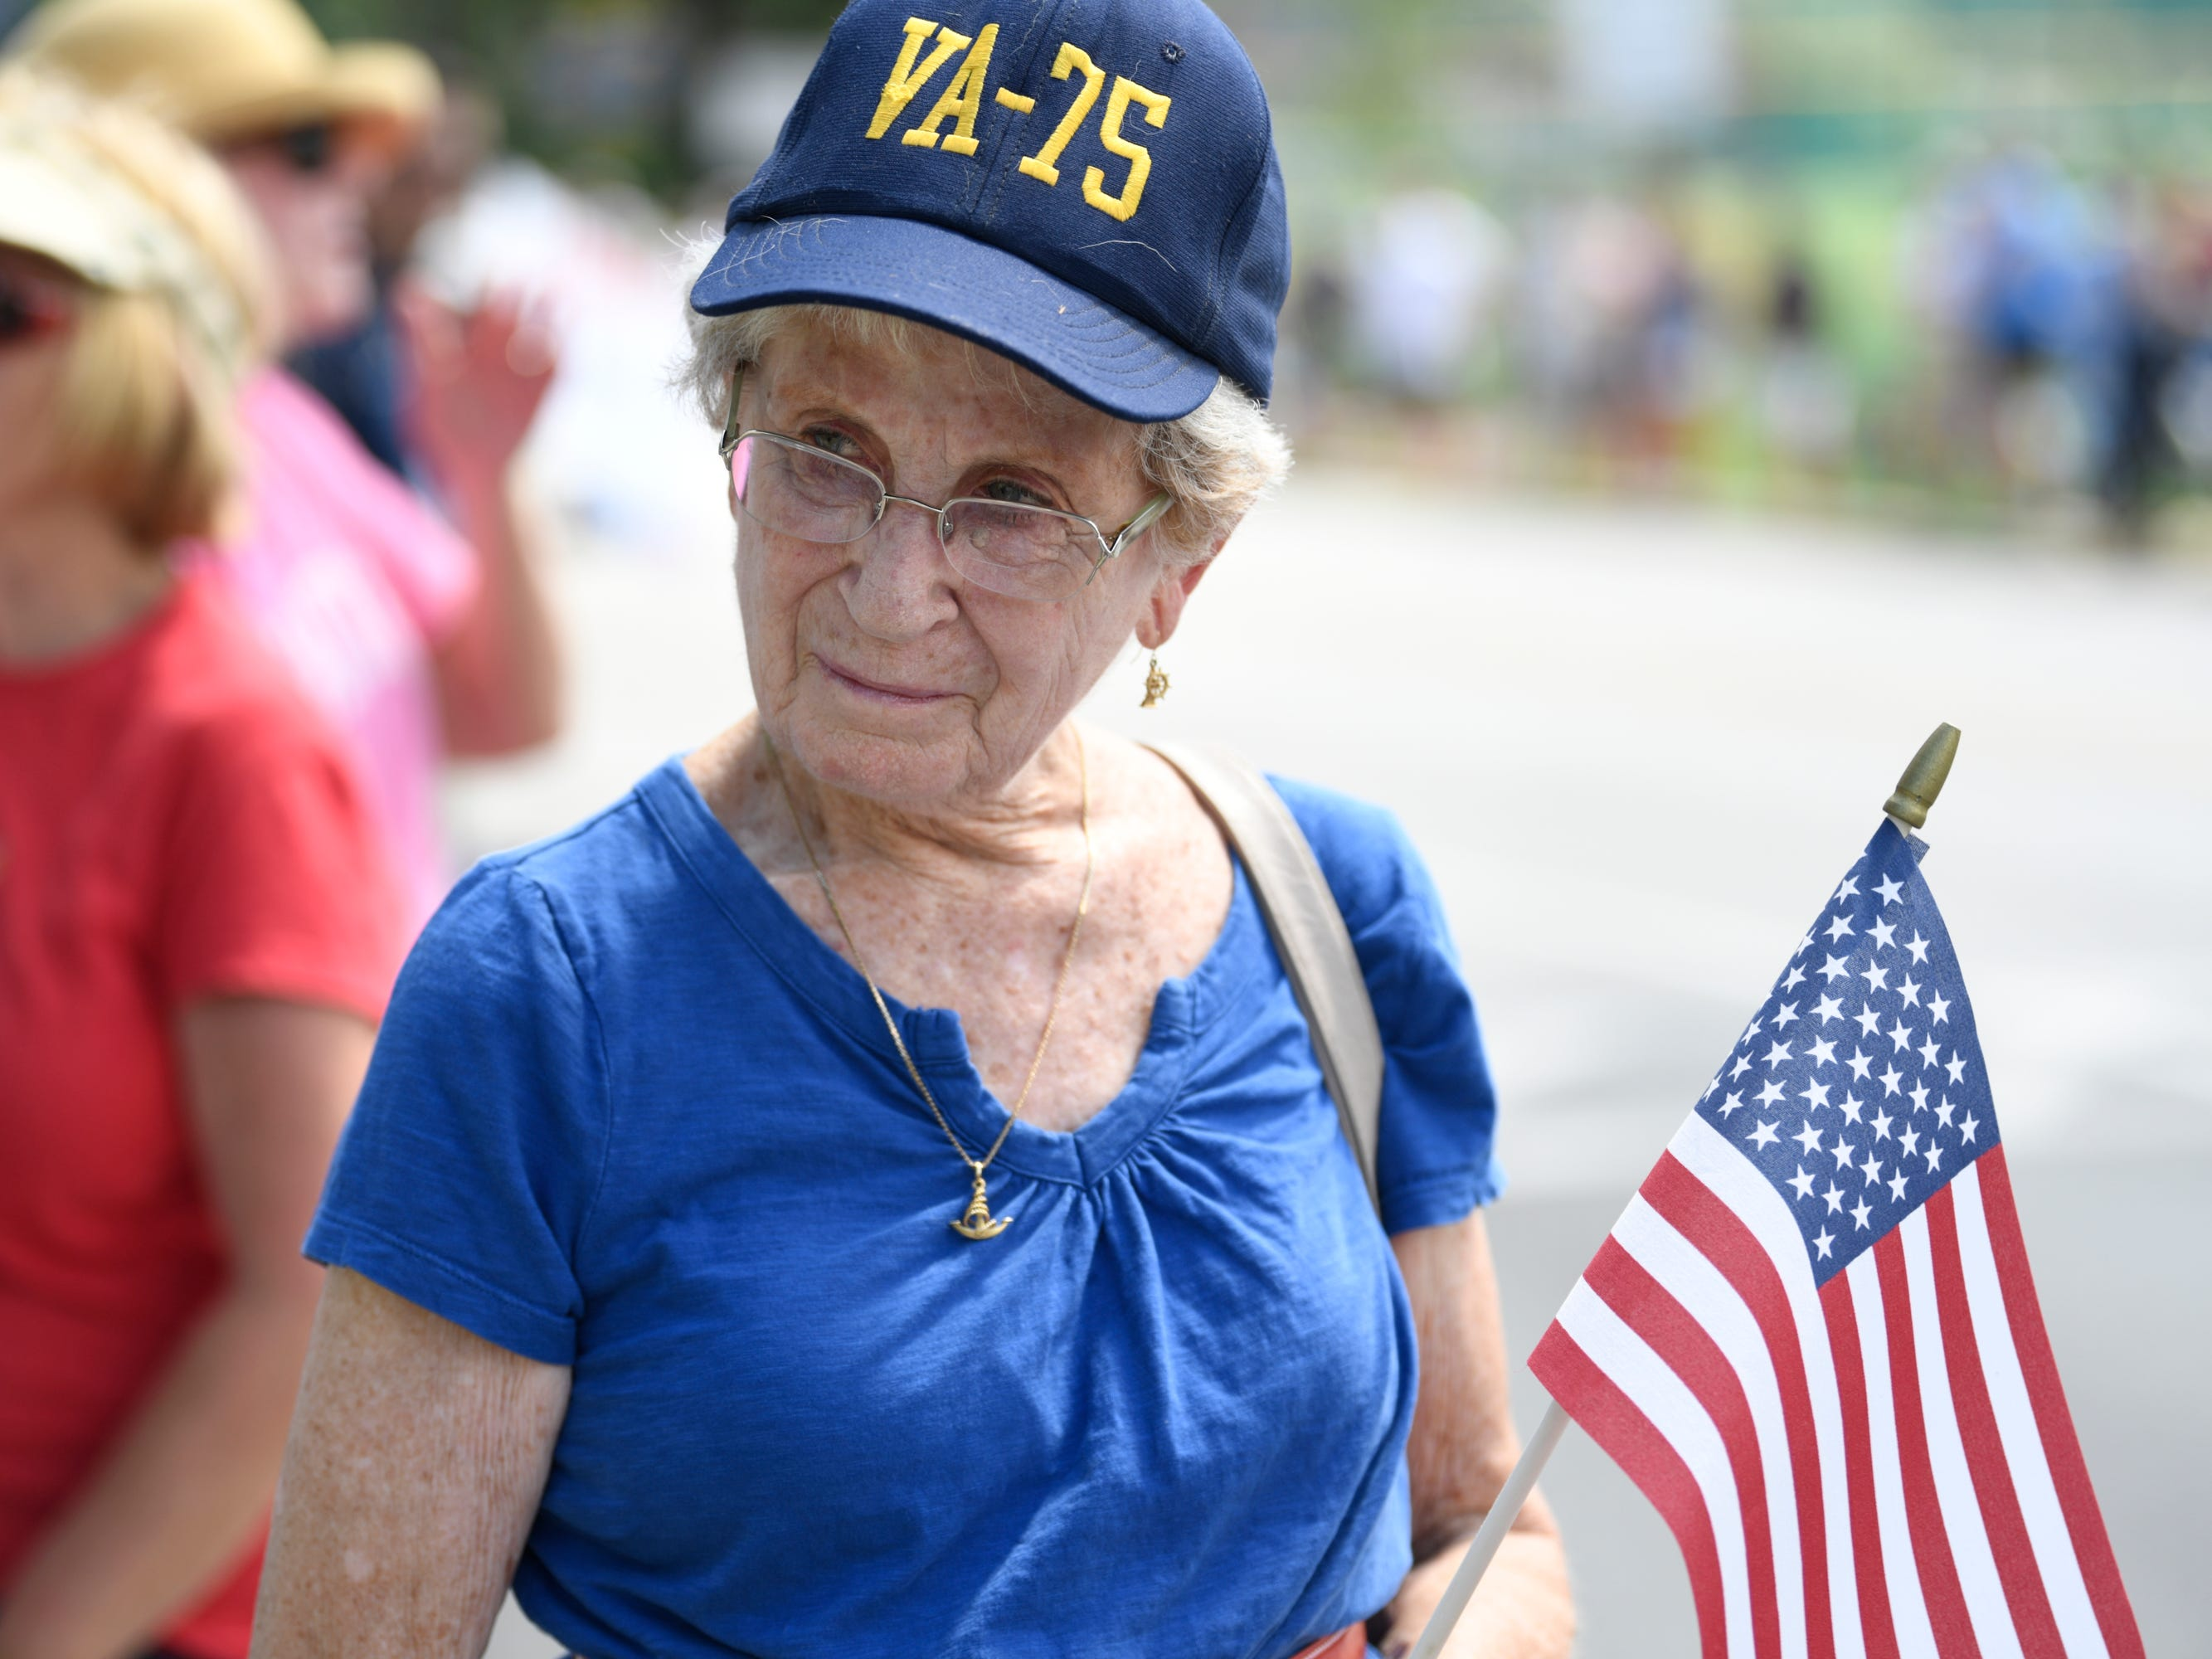 Ann Hewitt of Annapolis, Maryland waits to watch the passing of John McCain's motorcade on his way to be laid to rest at the U.S. Naval Academy.